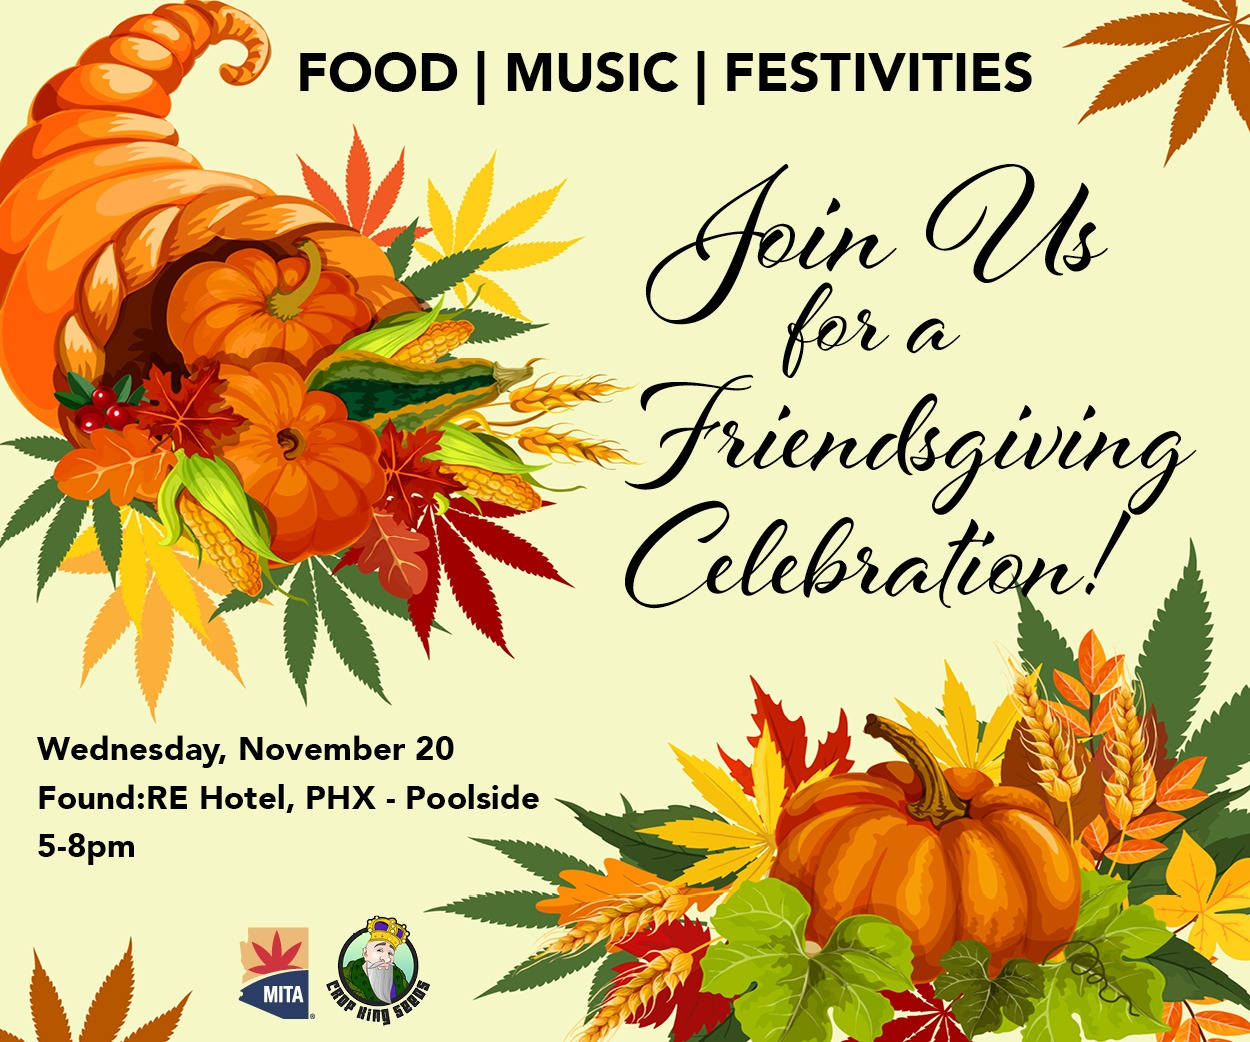 Join us for a thanksgiving celebration! Wednesday, November 20 @ RE Hotel, Phoenix. 5 to 8pm, poolside